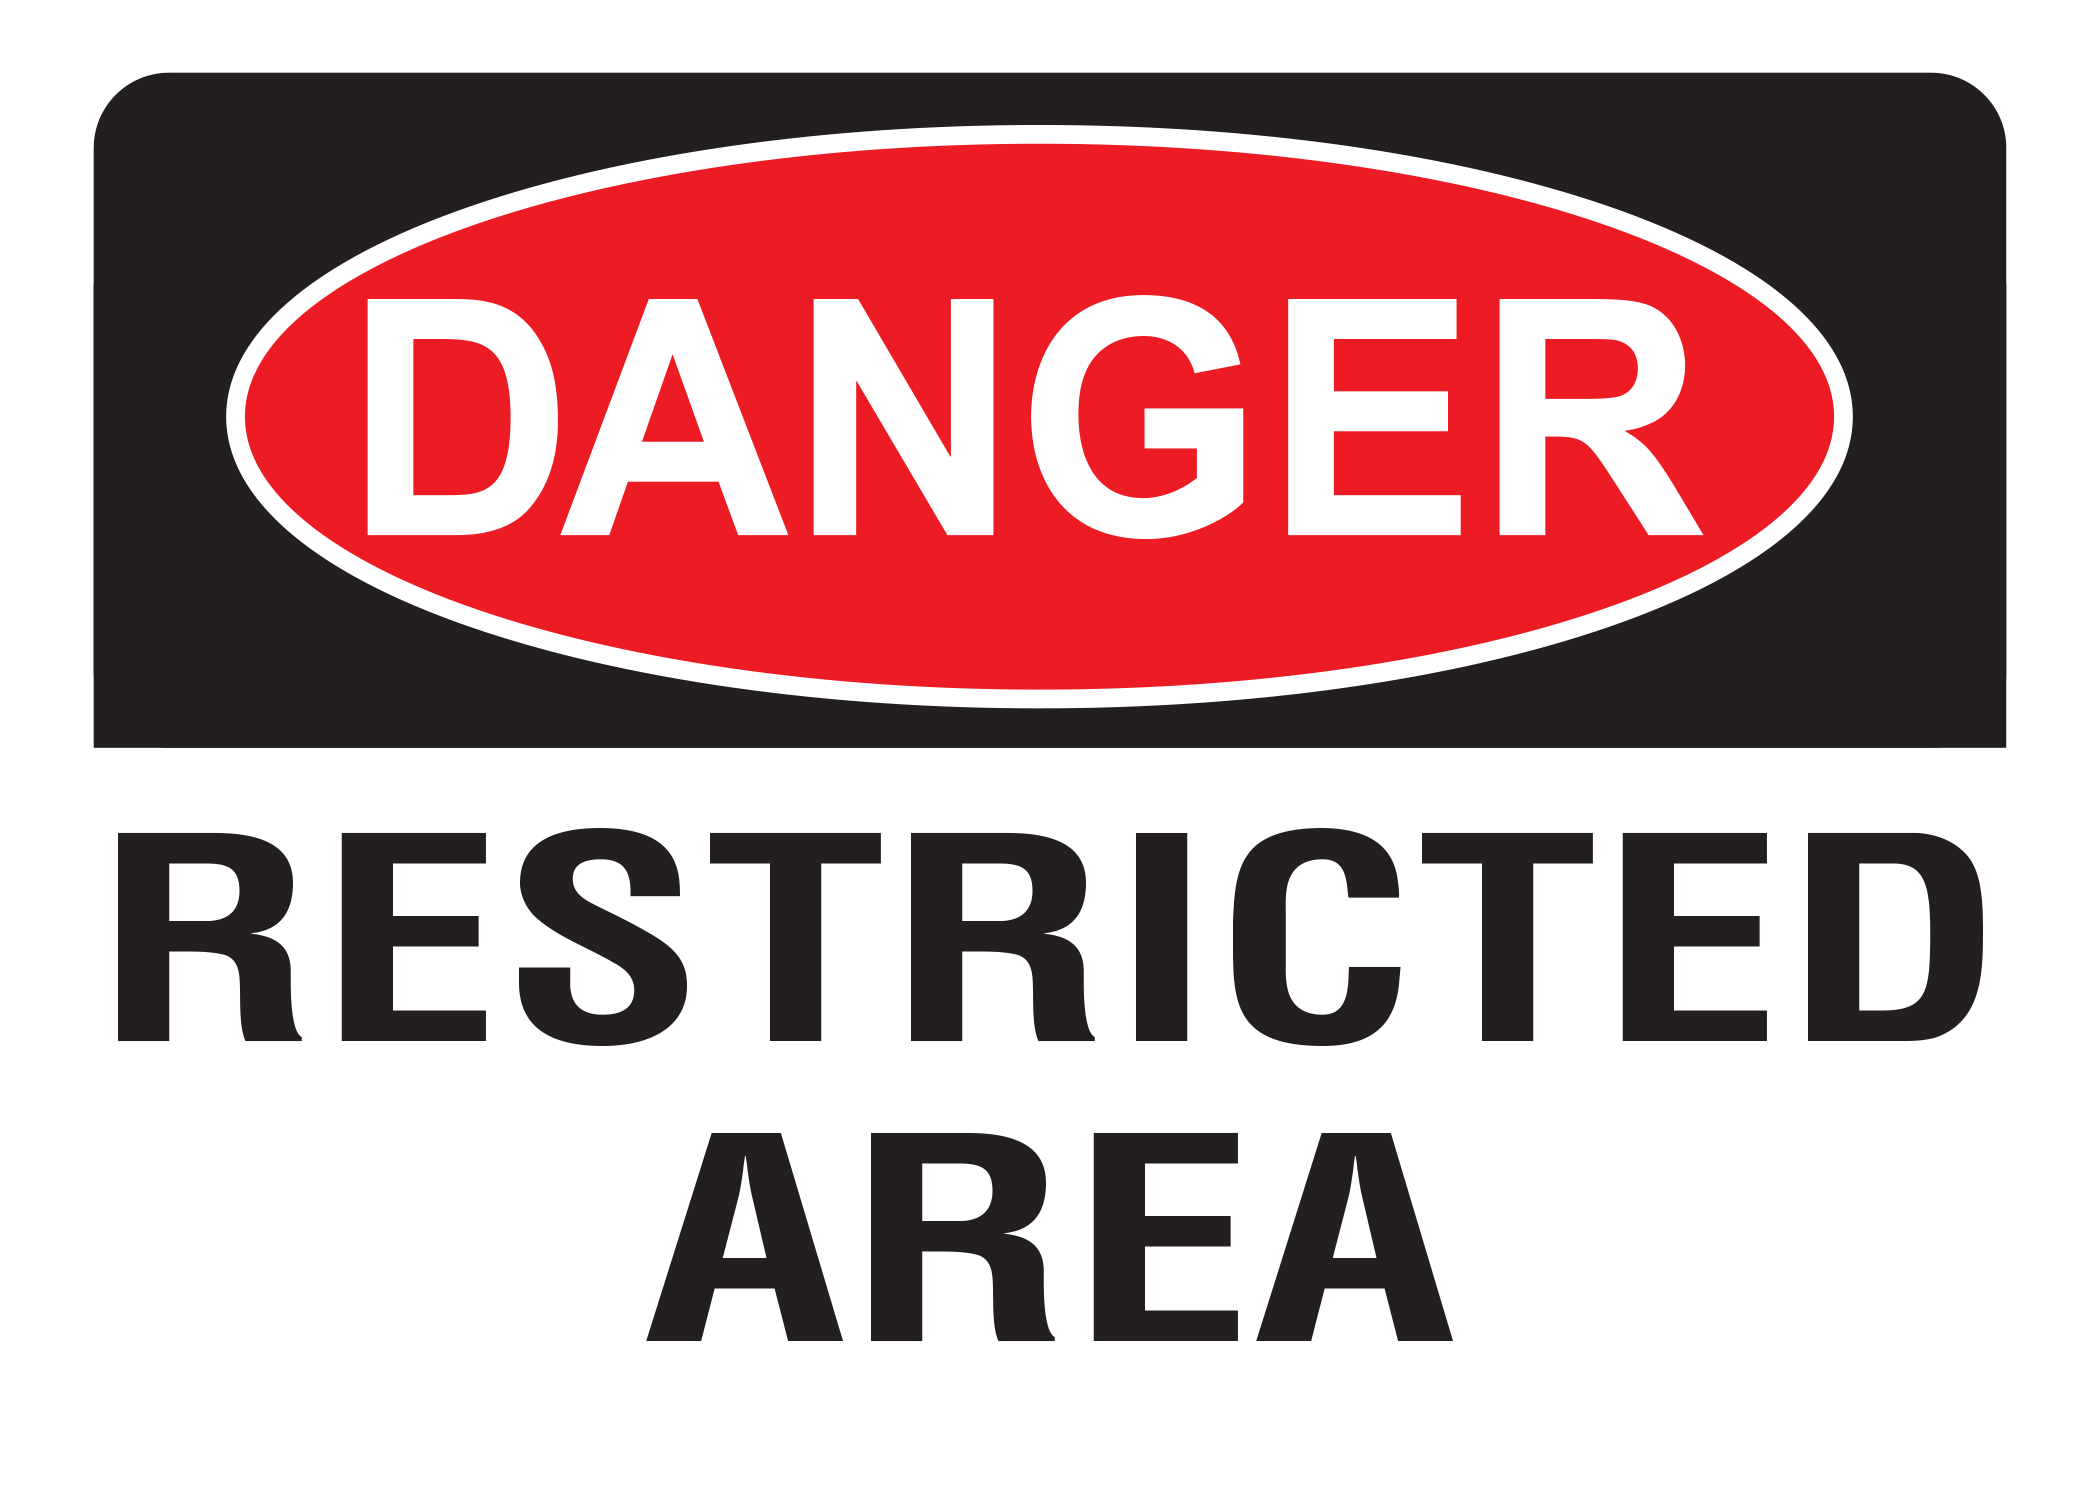 Danger Restricted Area